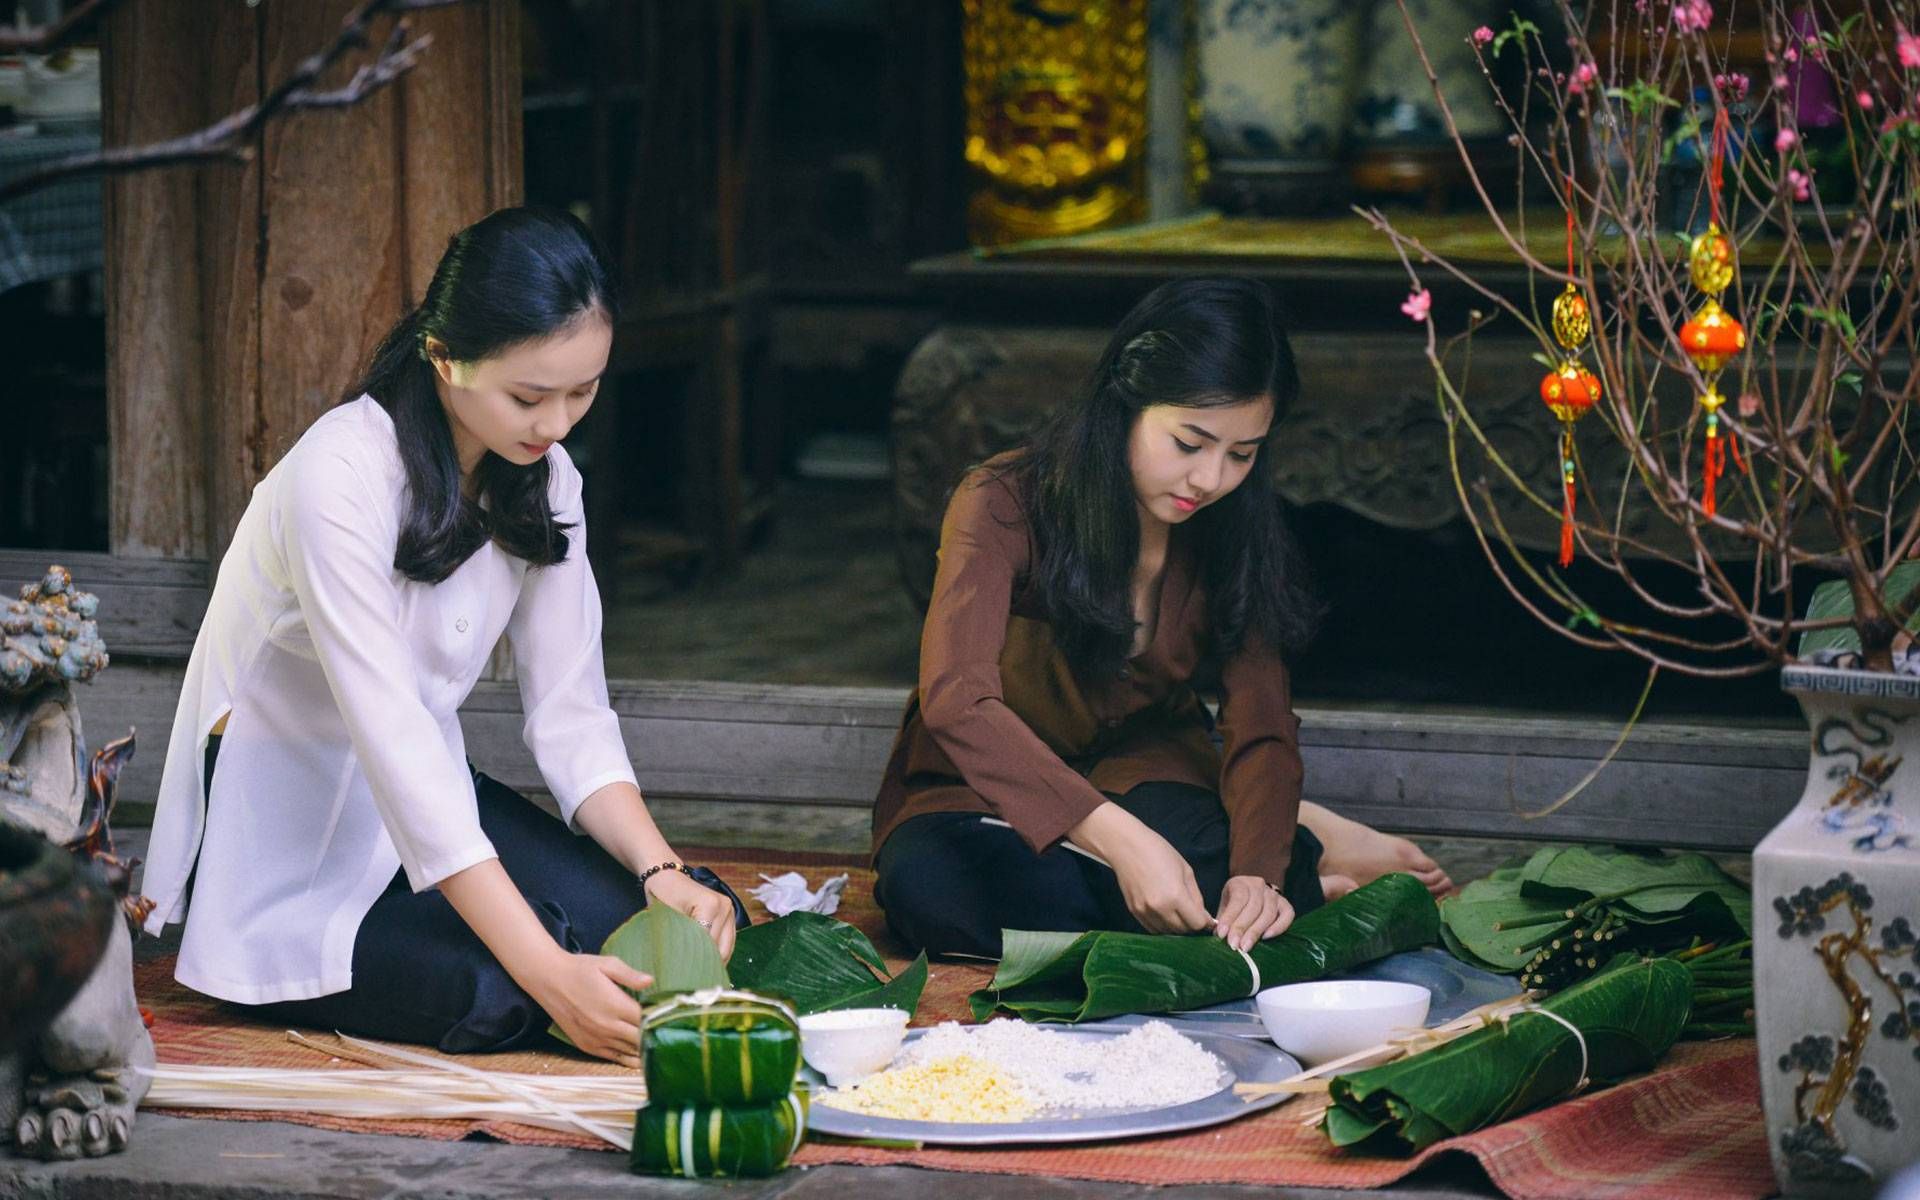 making Banh Chung in Tet holiday in Vietnam